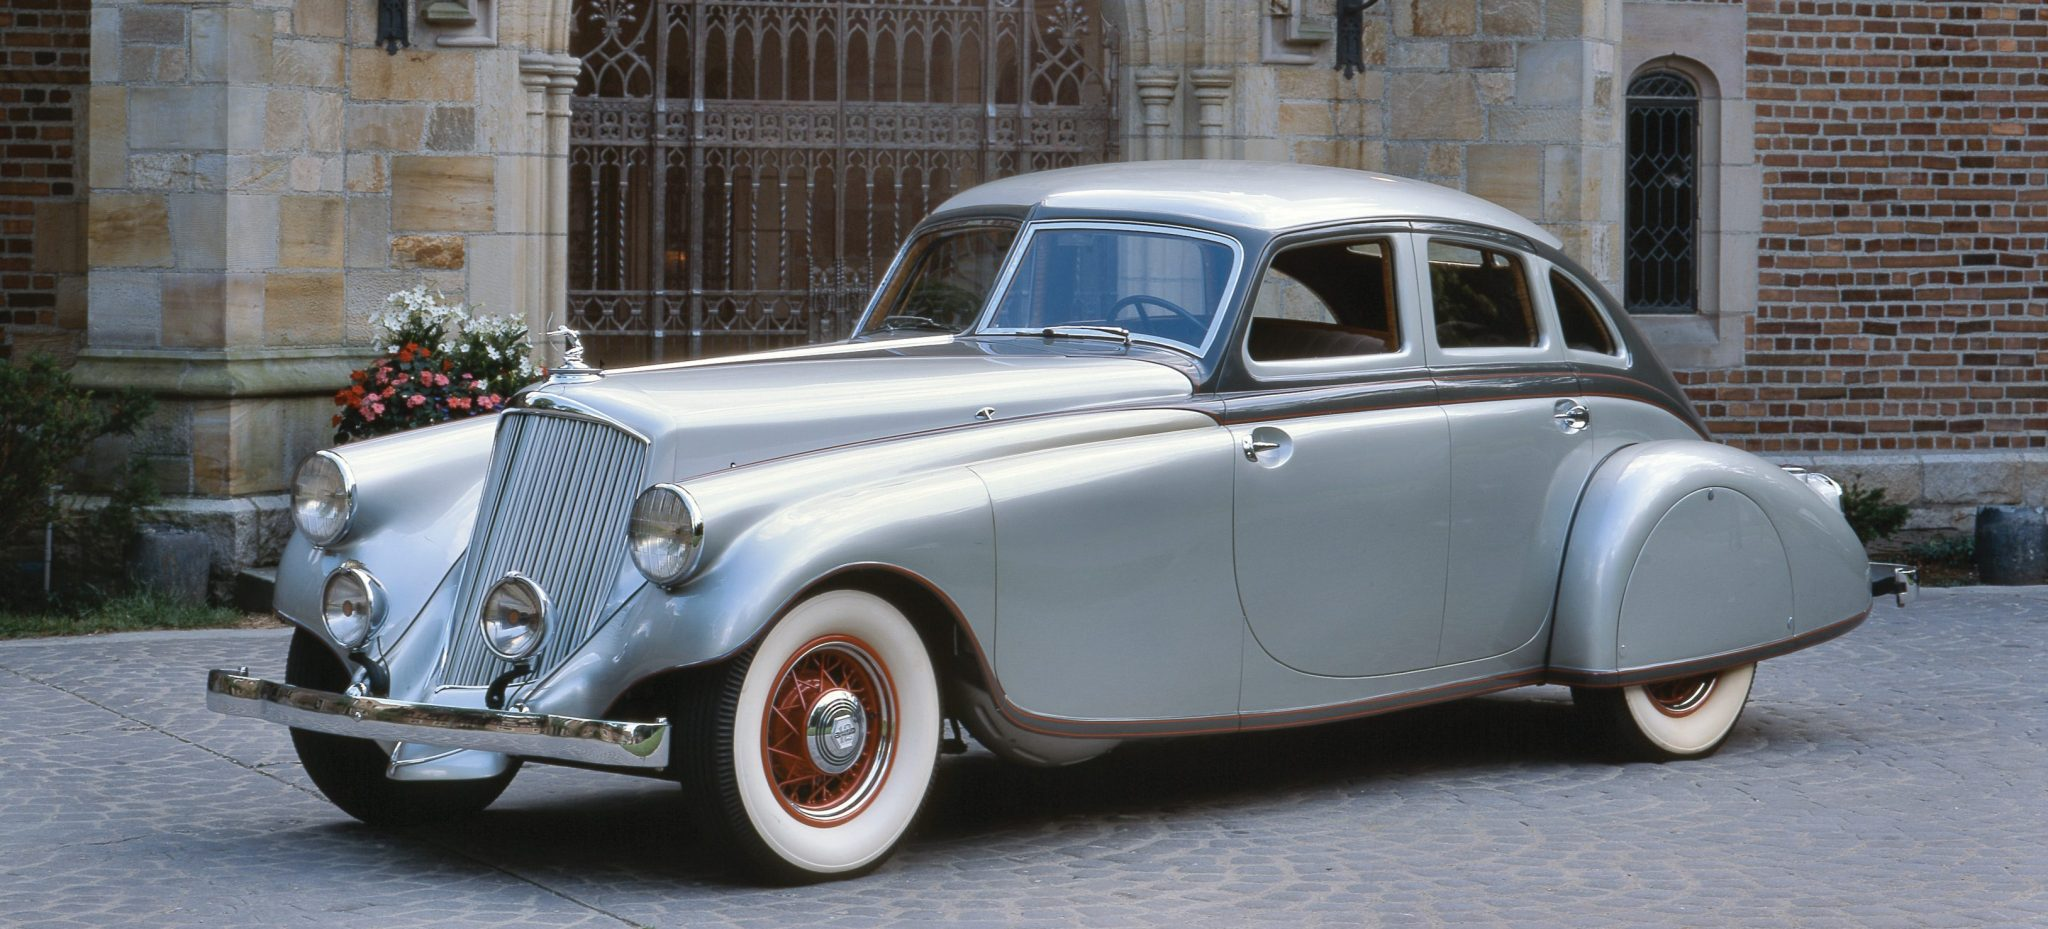 Is Insurance For A Classic Car Expensive